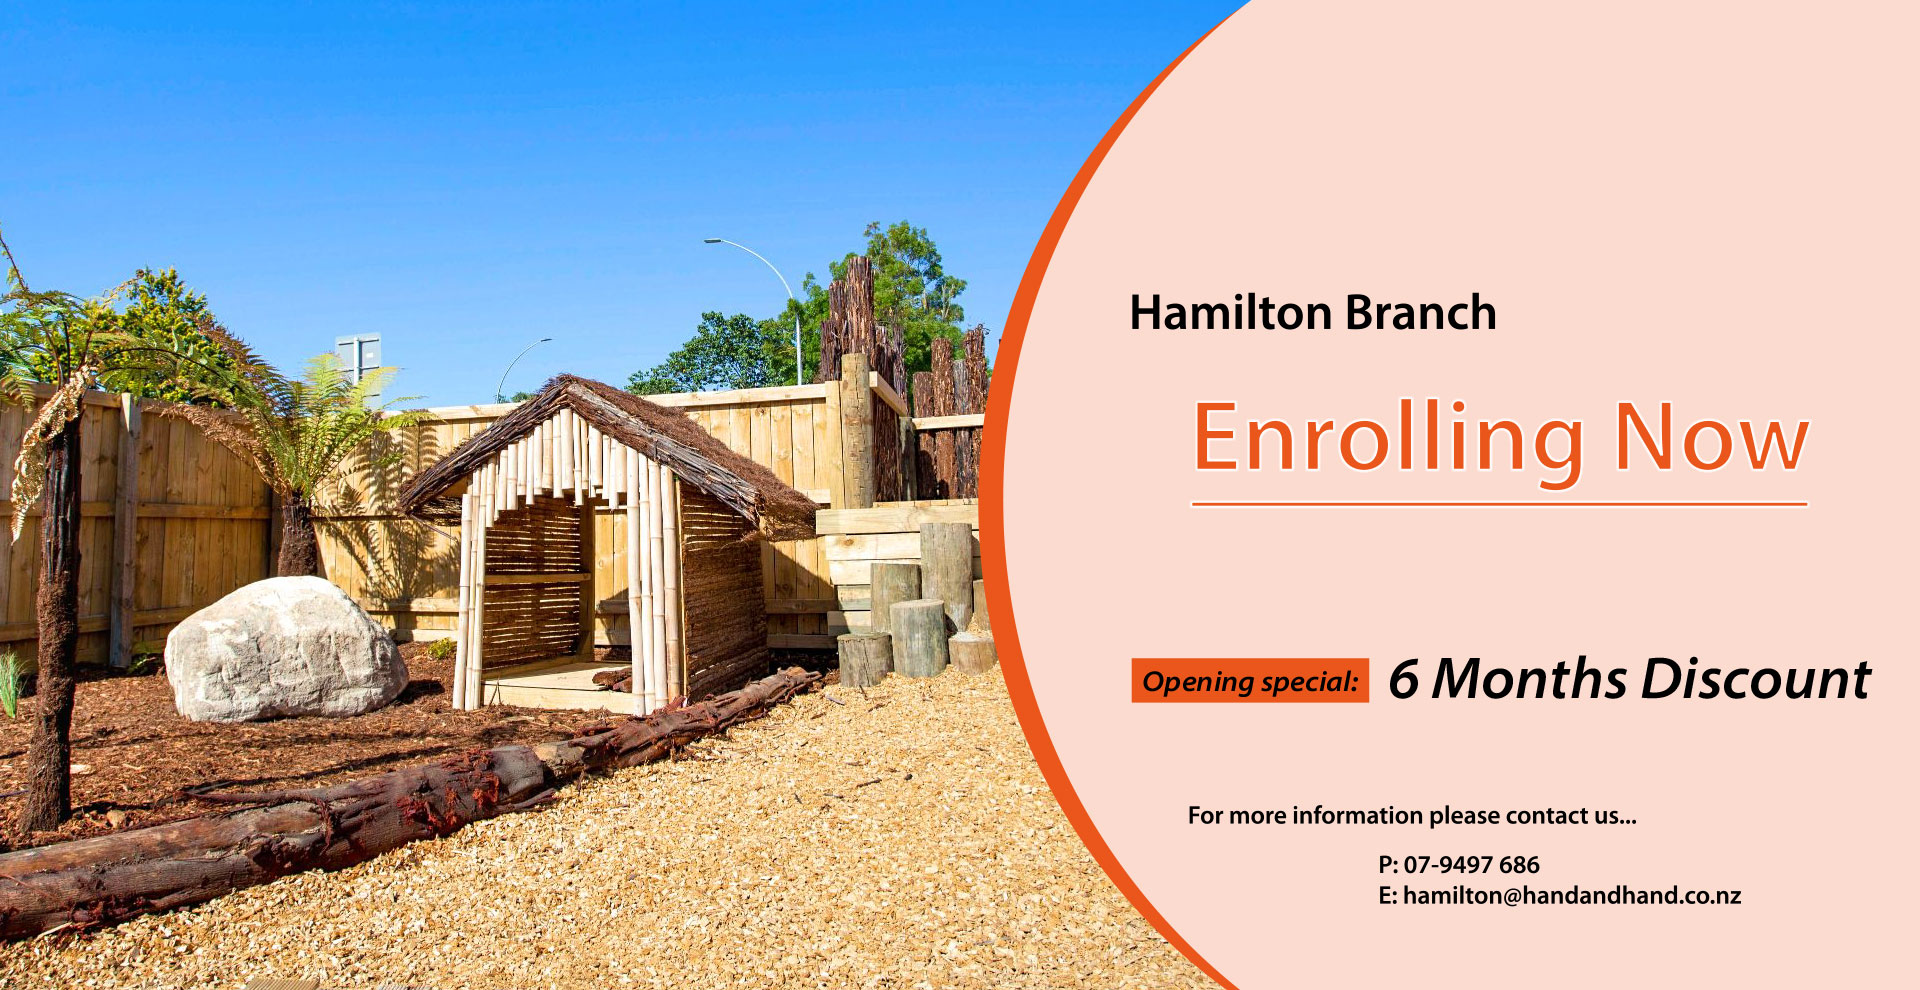 Hamilton Branch Enrolling Now